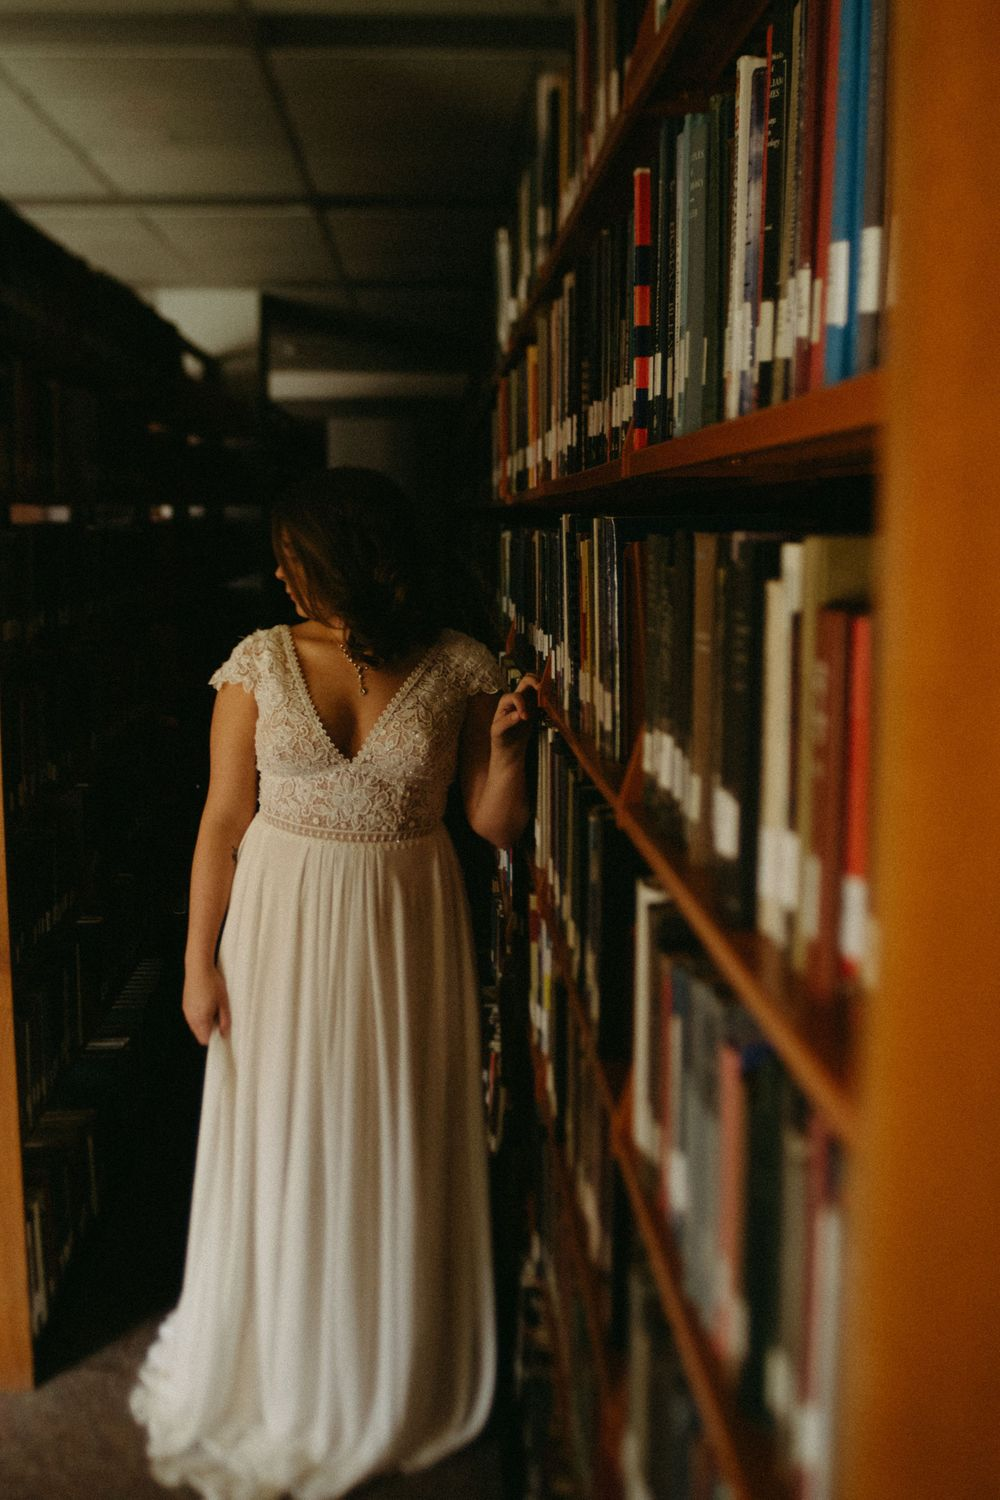 bride-standing-in-book-rows-wedding-cowles-library-desmoines-iowa-raelyn-ramey-photography